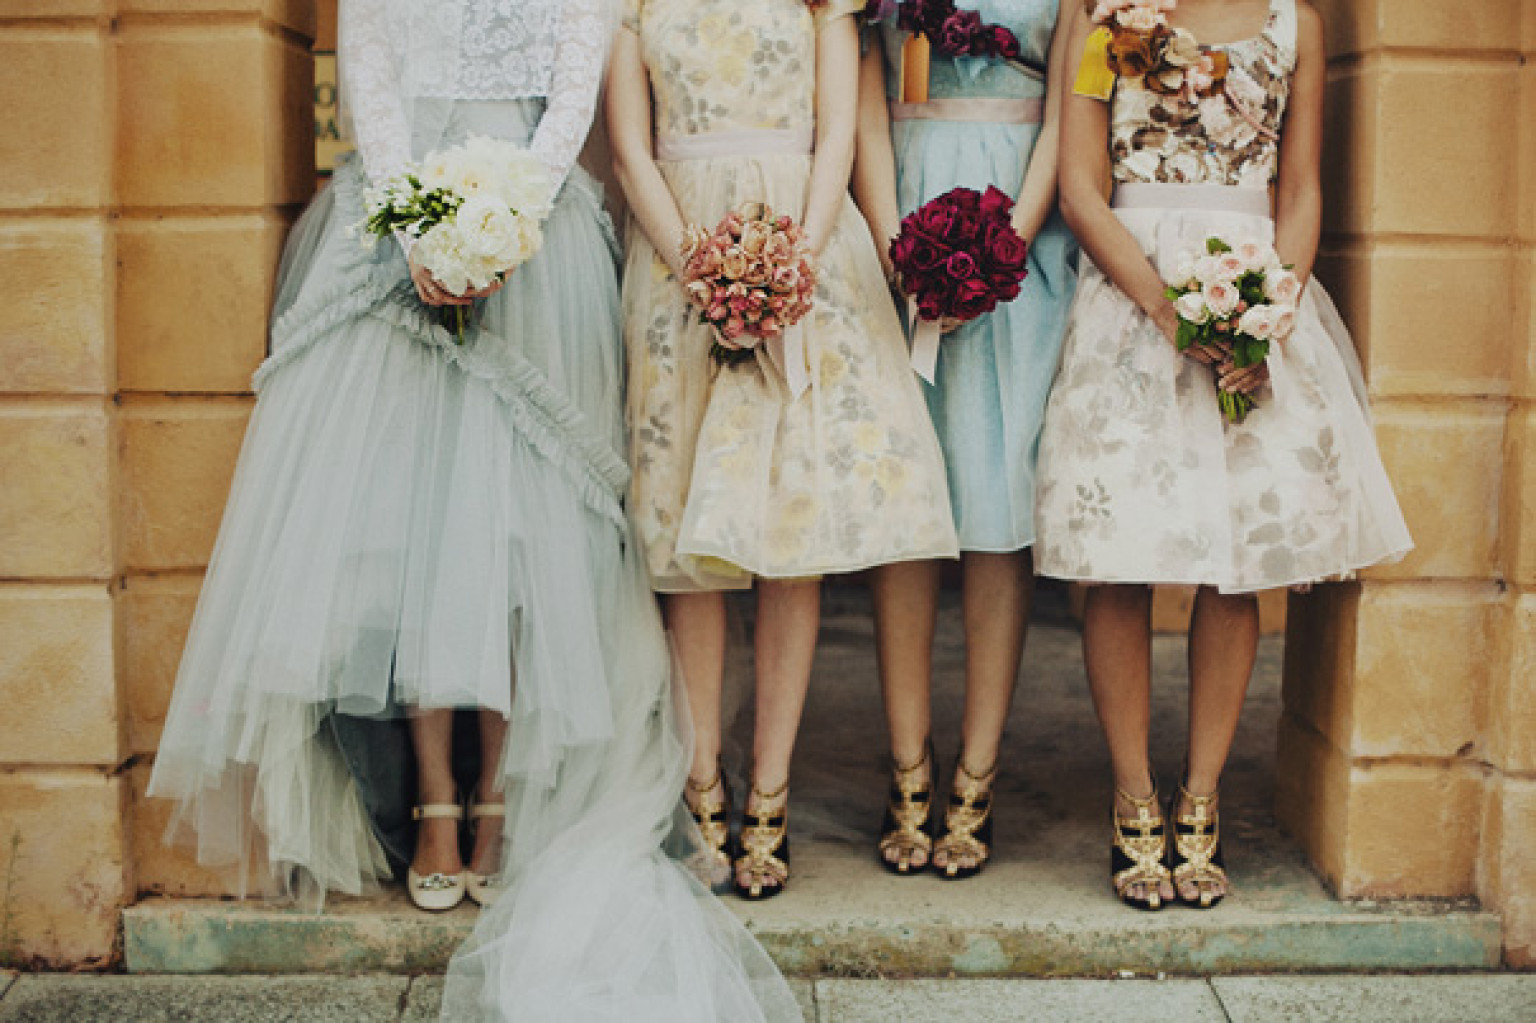 Vintage bridesmaid dresses that dont look like costumes photos vintage bridesmaid dresses that dont look like costumes photos huffpost ombrellifo Choice Image